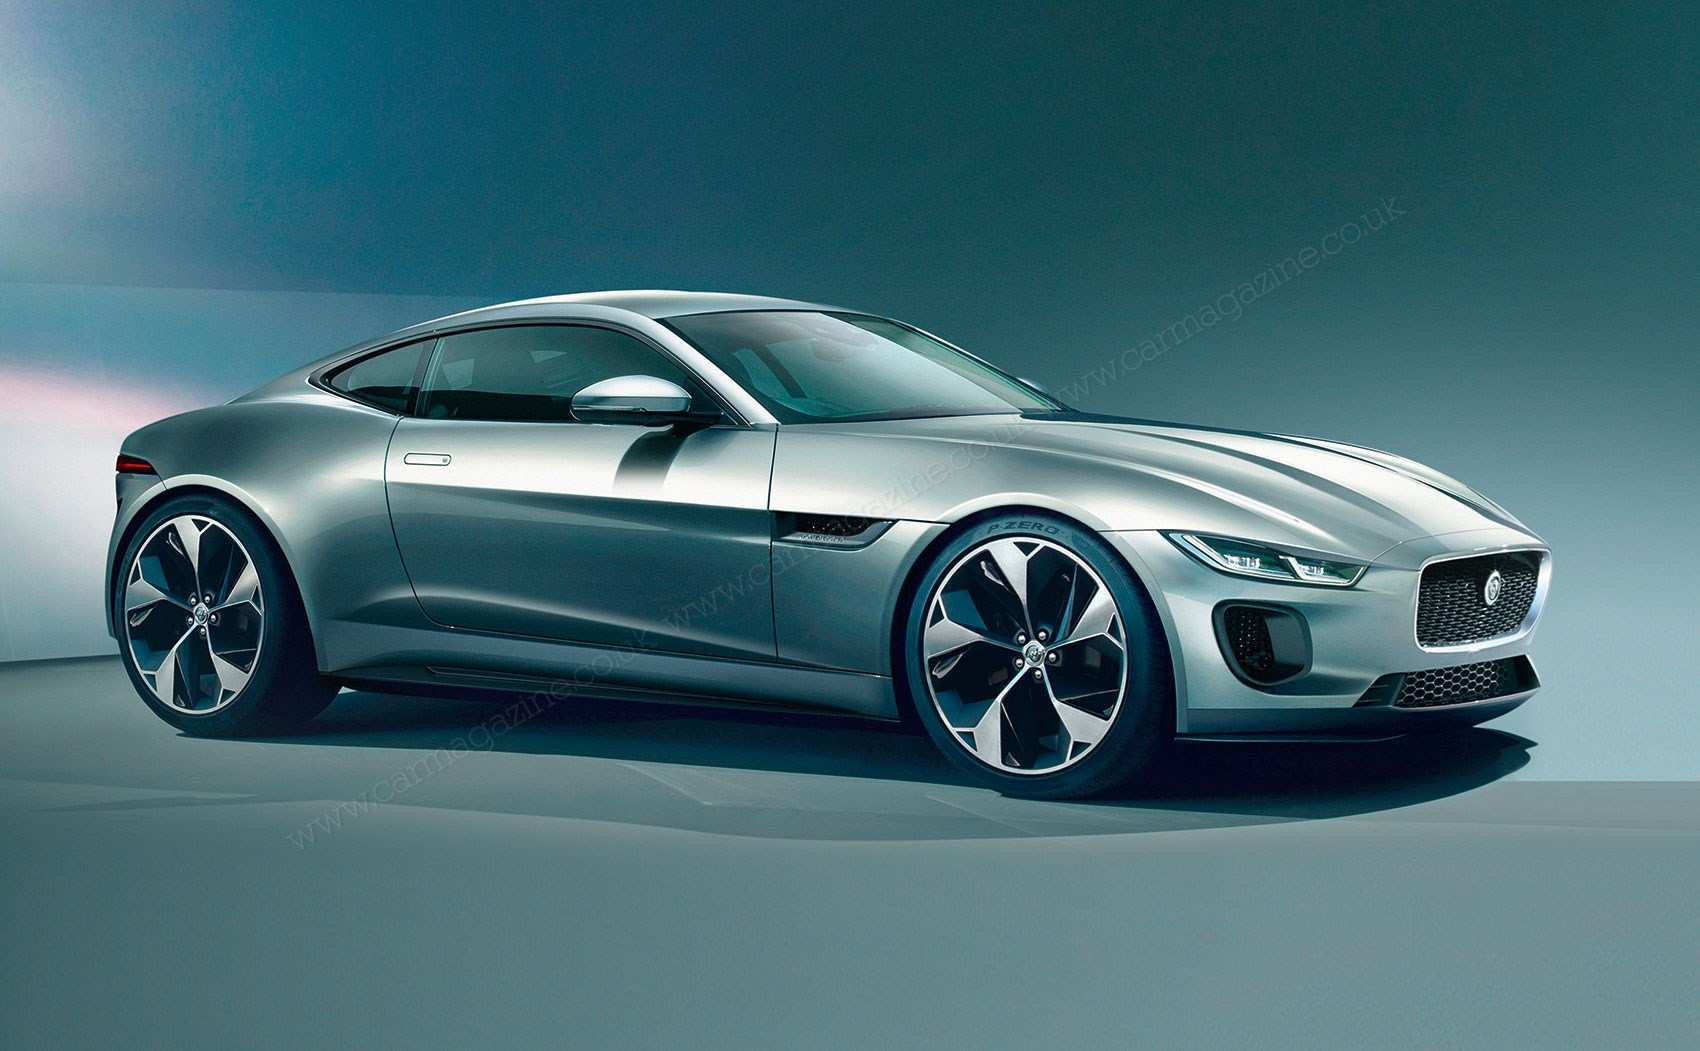 73 Great 2020 Jaguar F Type Coupe Picture for 2020 Jaguar F Type Coupe